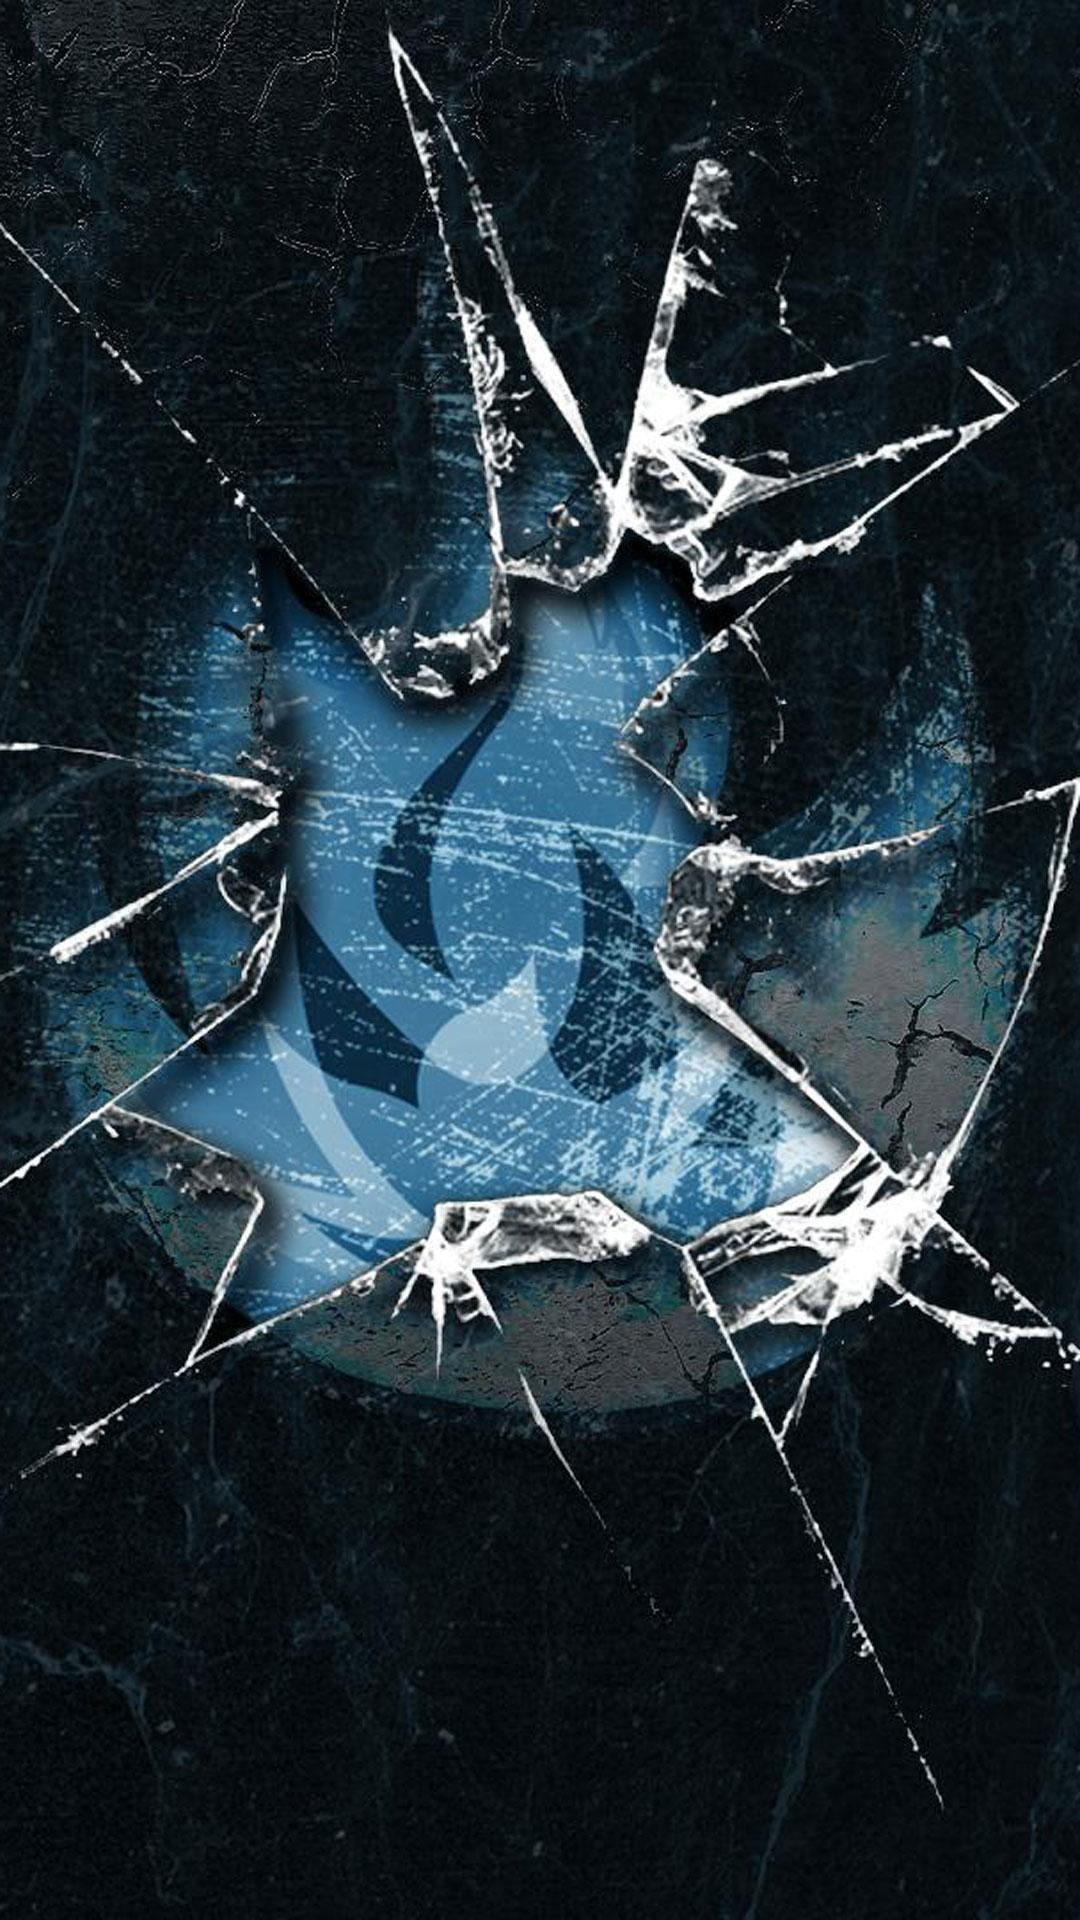 Cracked Screen Live Wallpaper For Android Apk Download